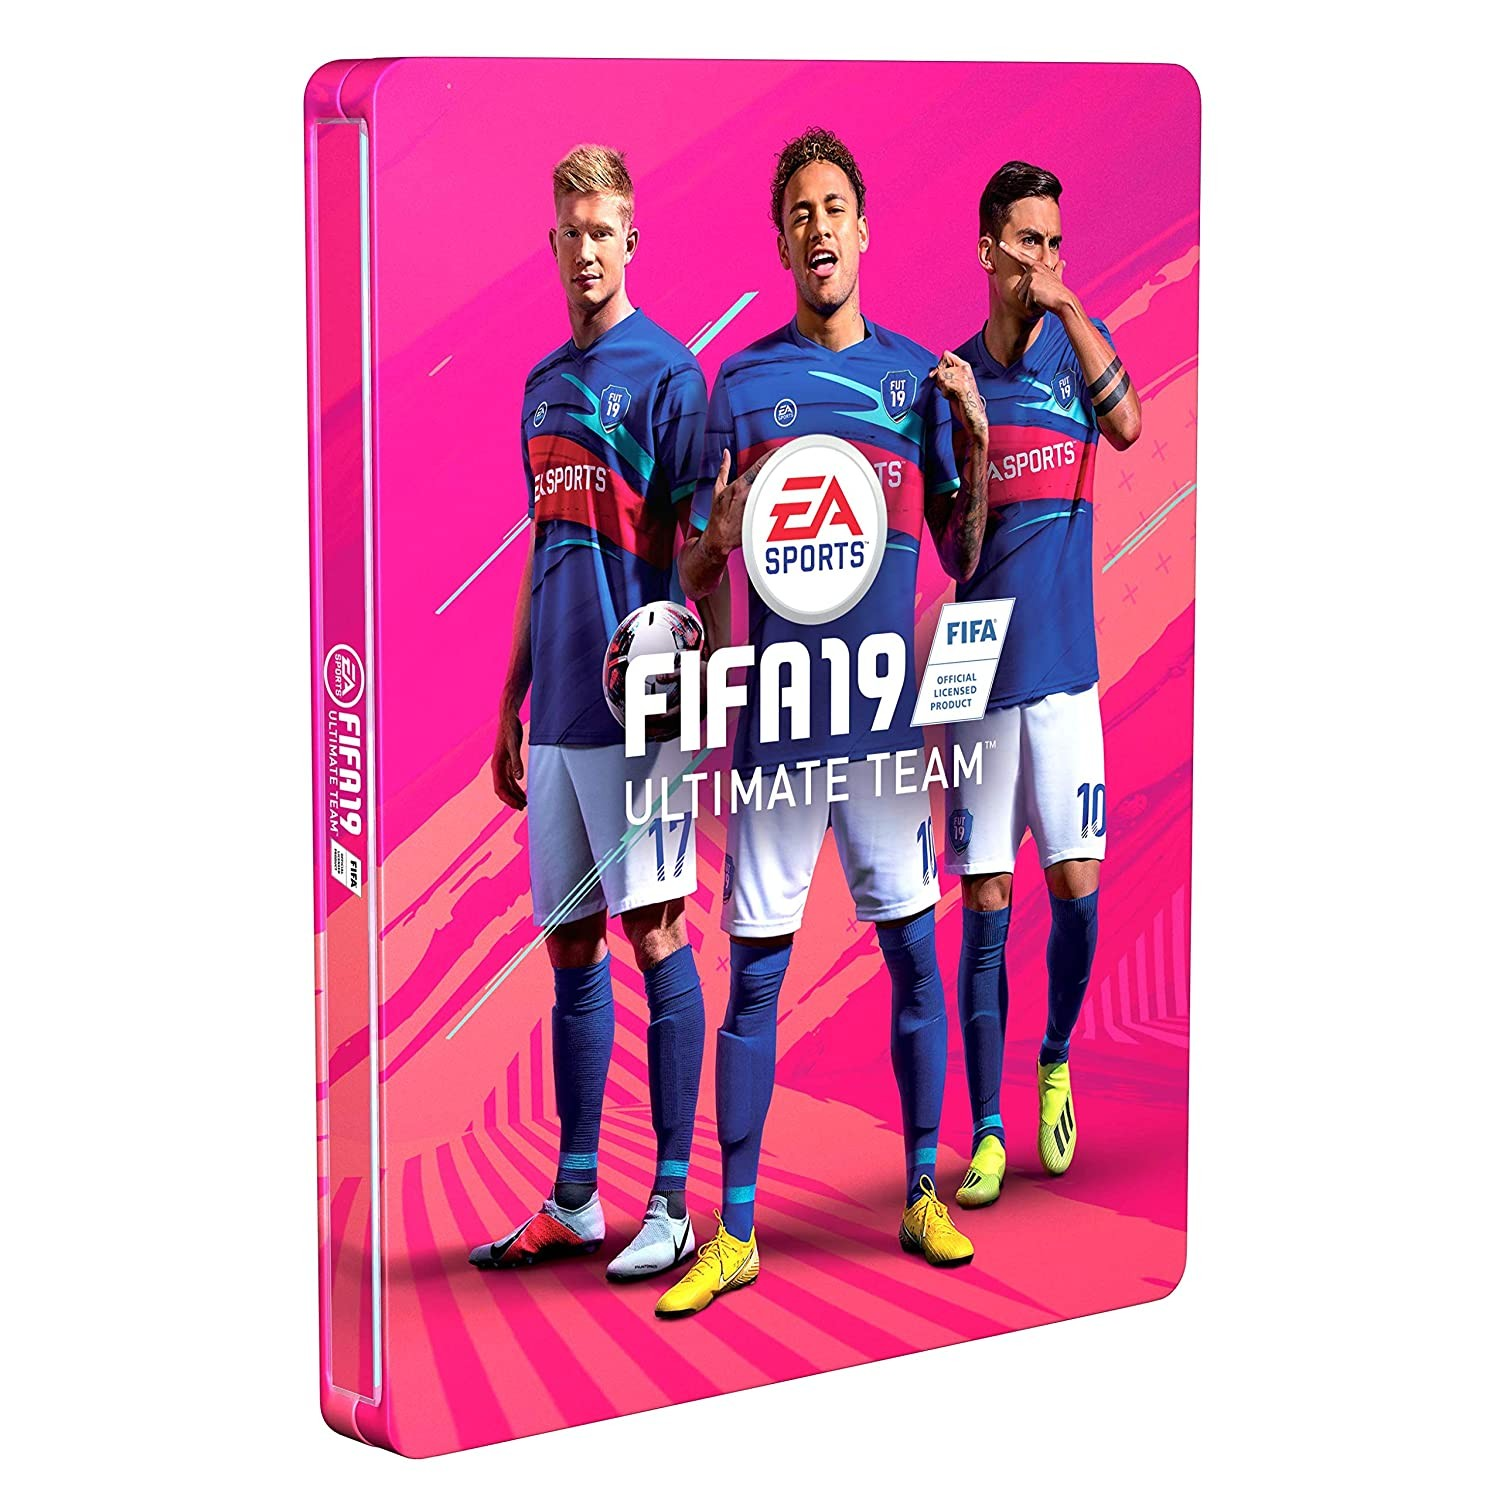 Steelbook FIFA 19 Ultimate Team | Стилбук